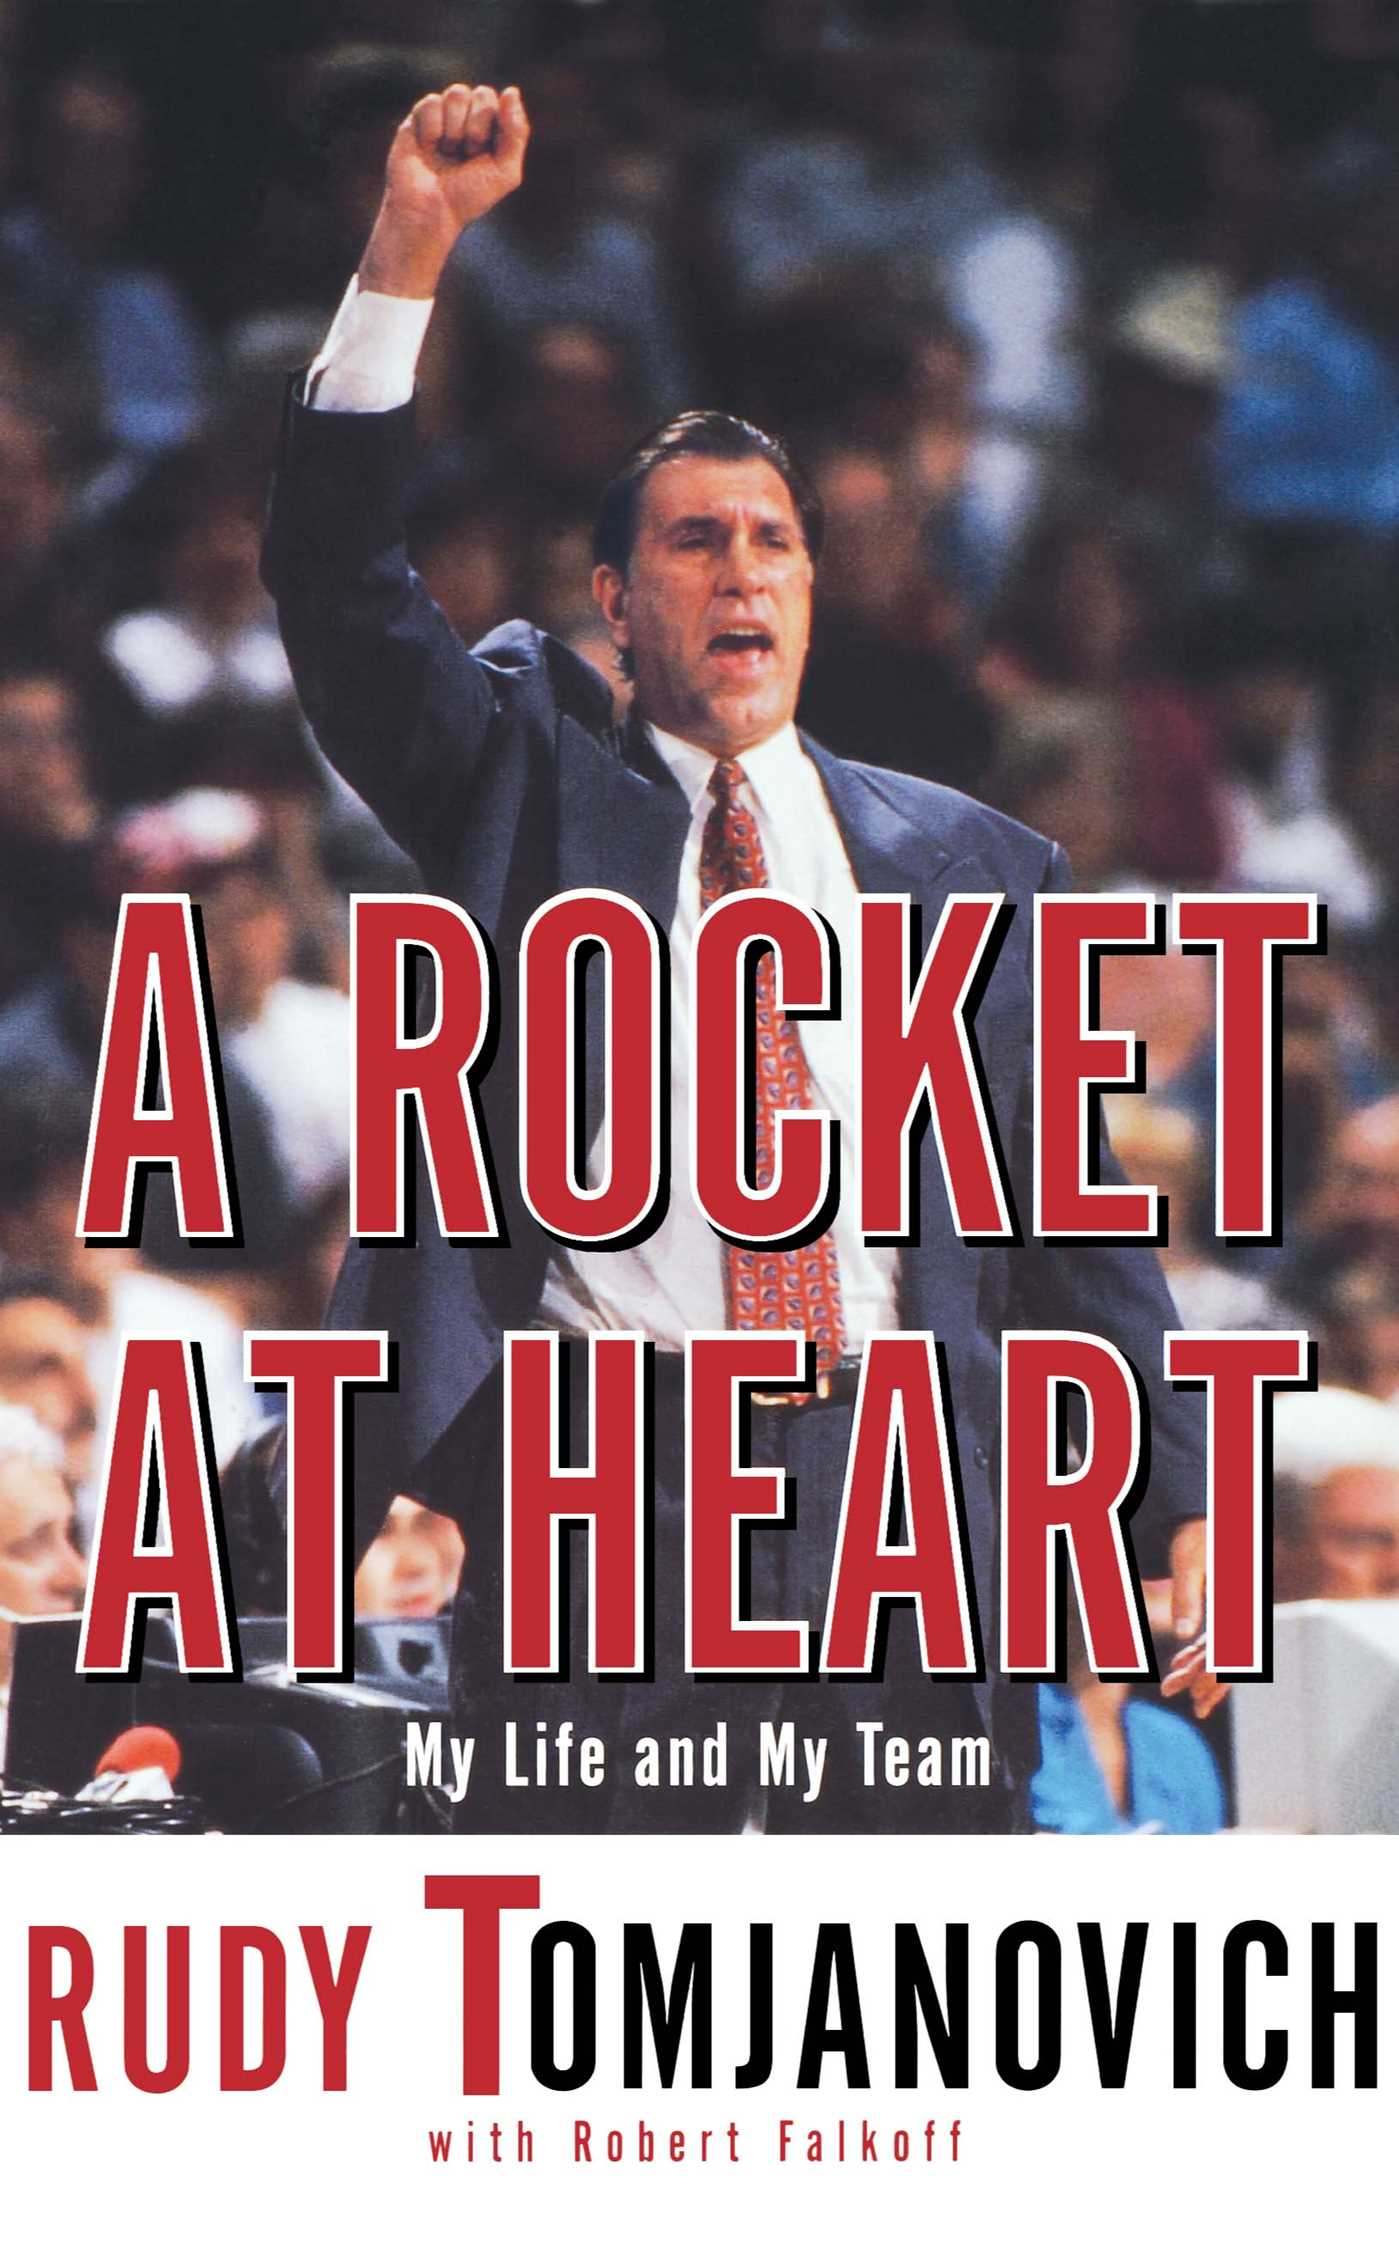 Rocket-at-heart-9781416552062_hr